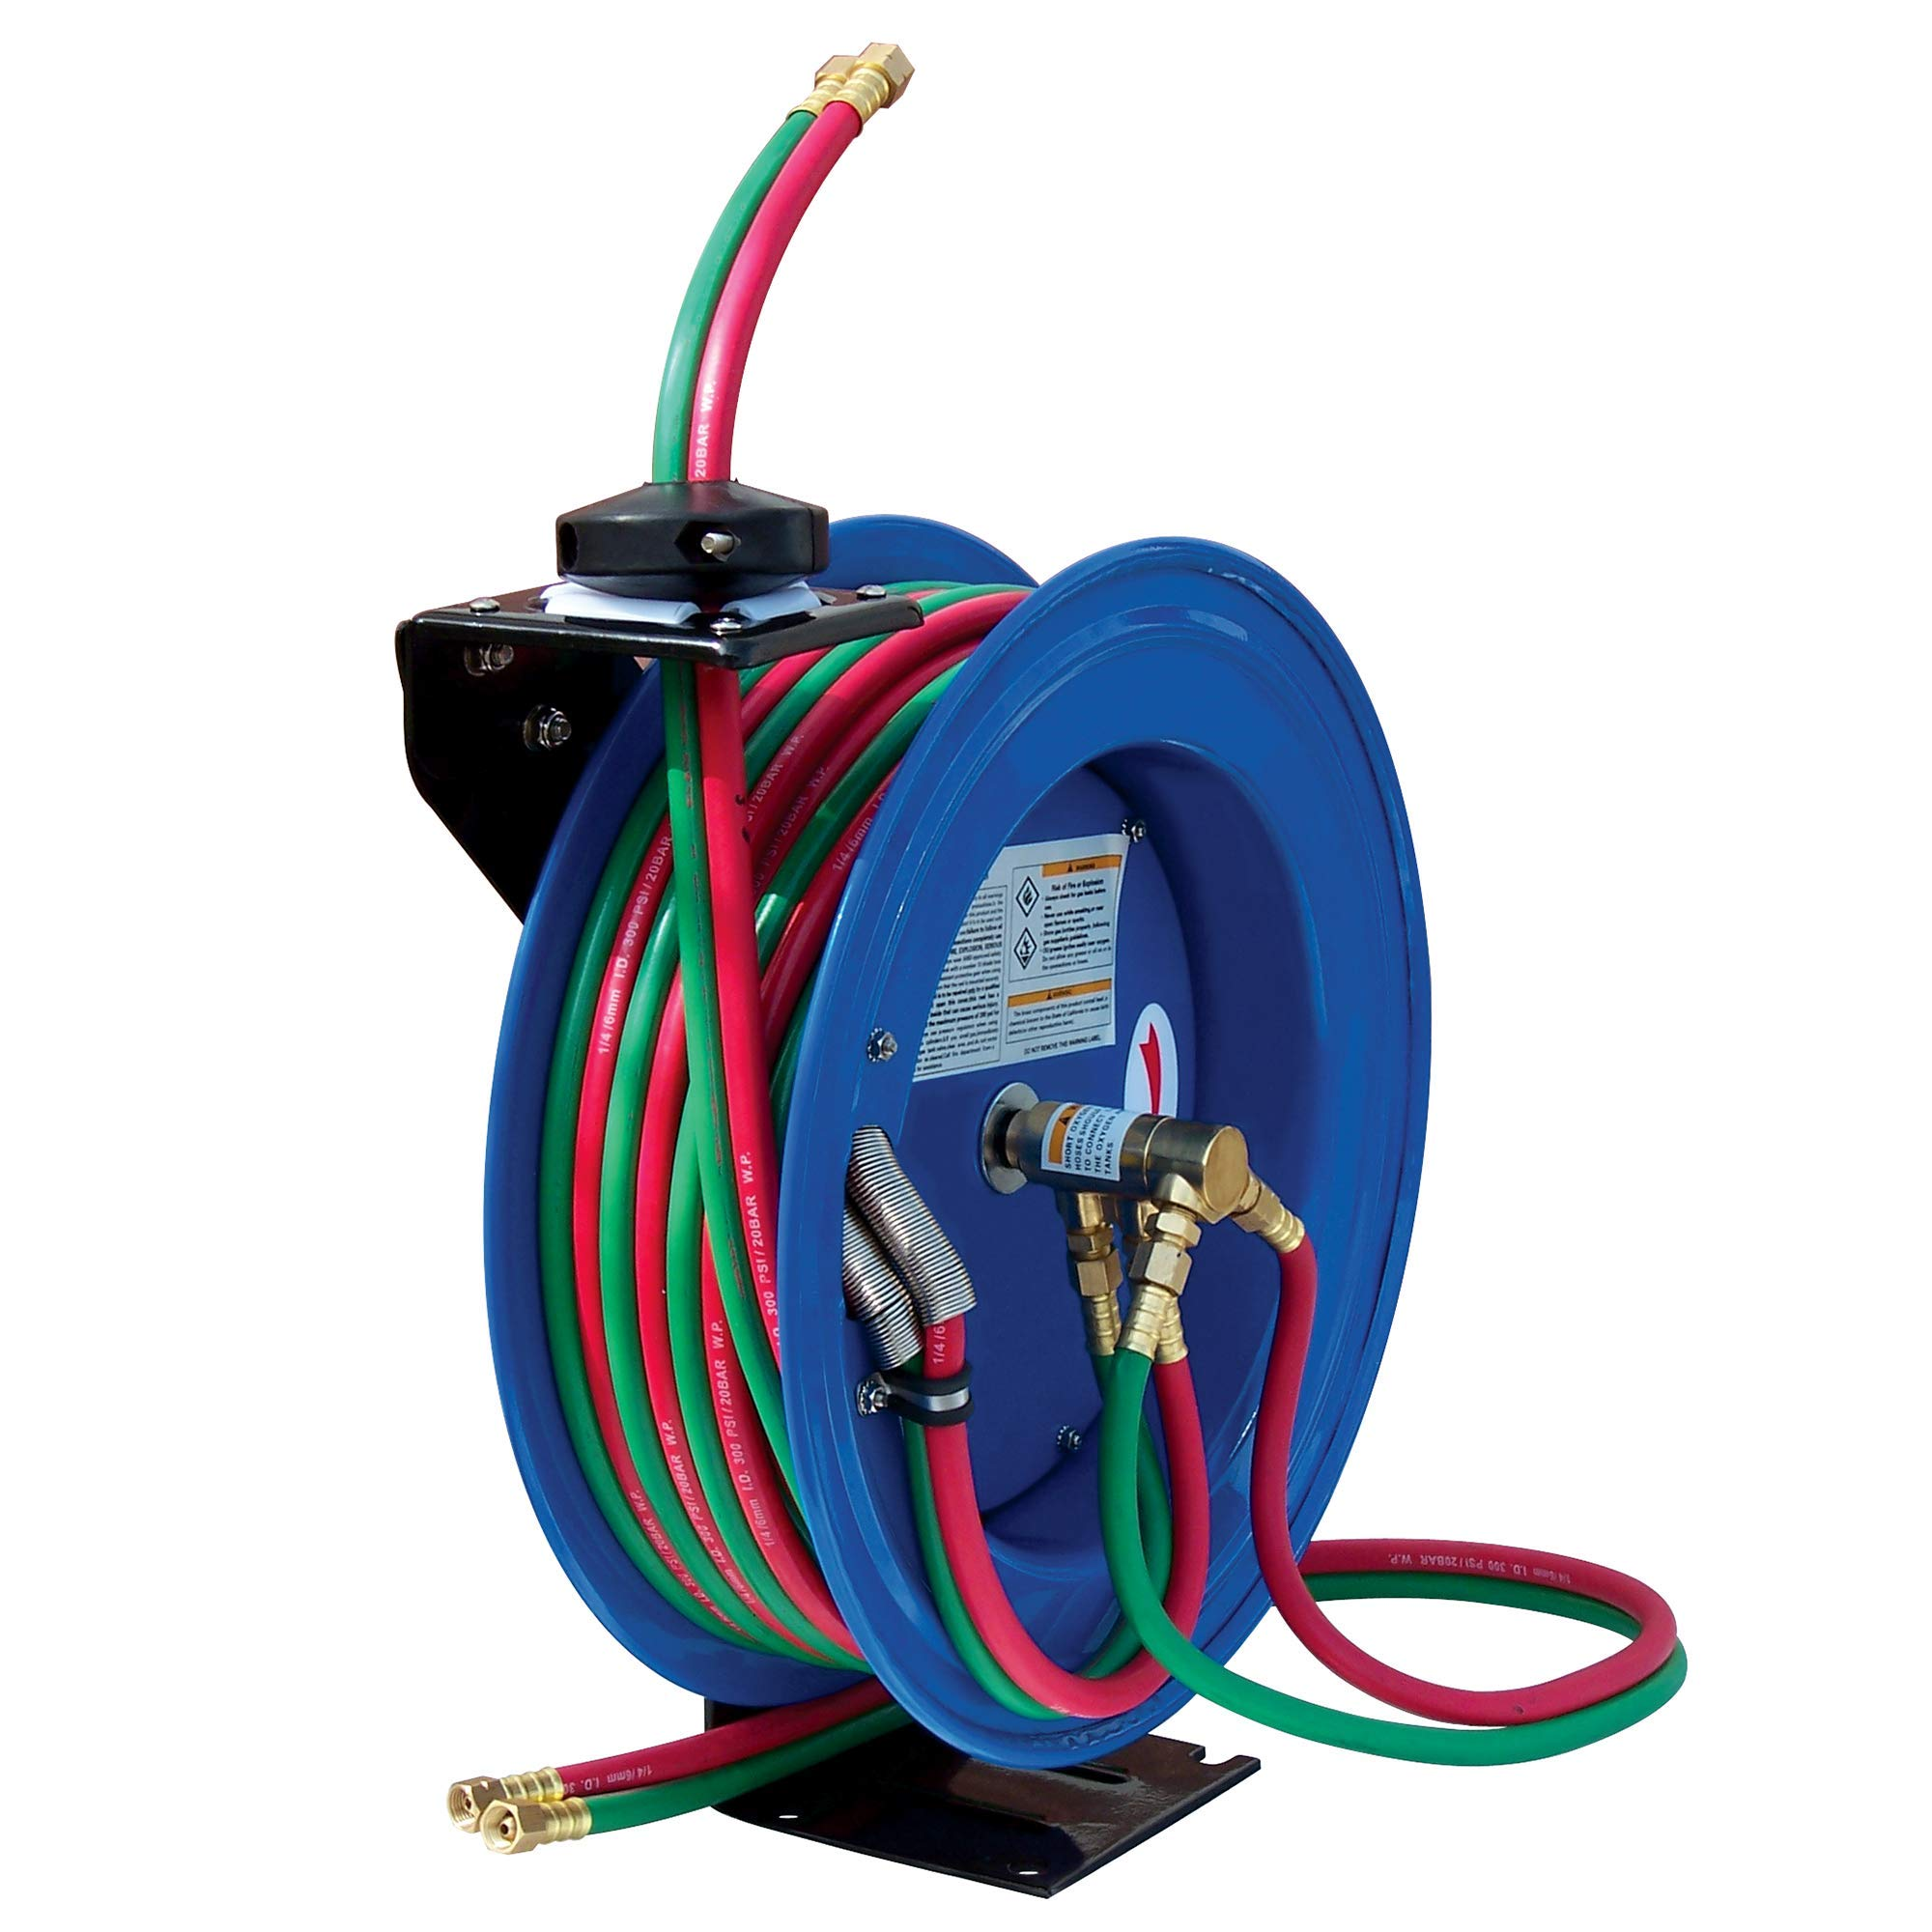 Cyclone Pneumatic CP3100 Retracable Air Hose Reel, Blue